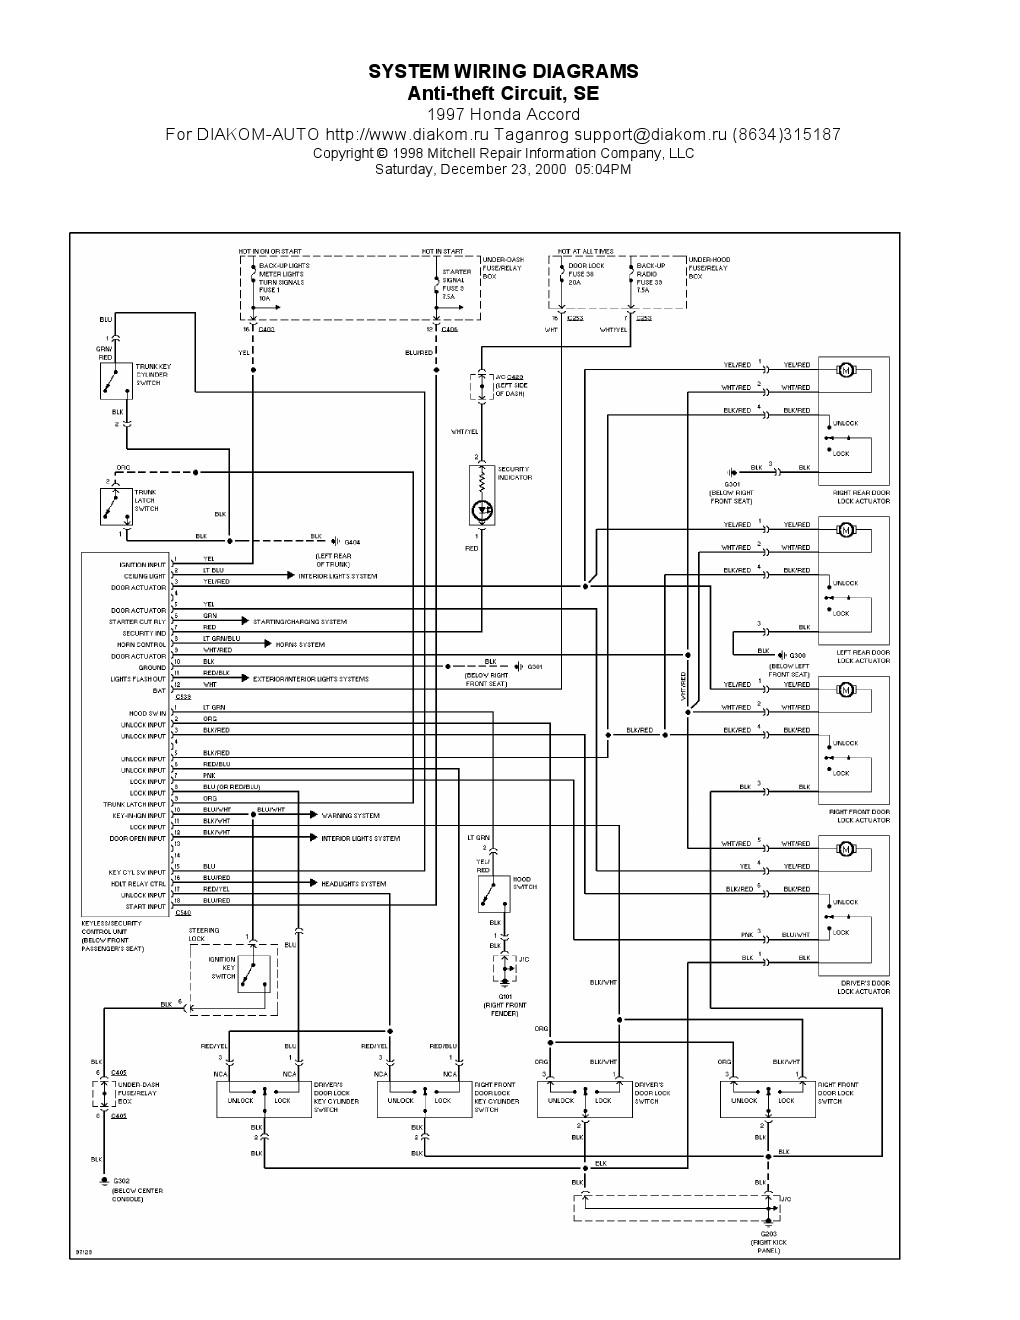 1996 Honda Crv Fuse Box Diagram Choice Image - Diagram Design Ideas